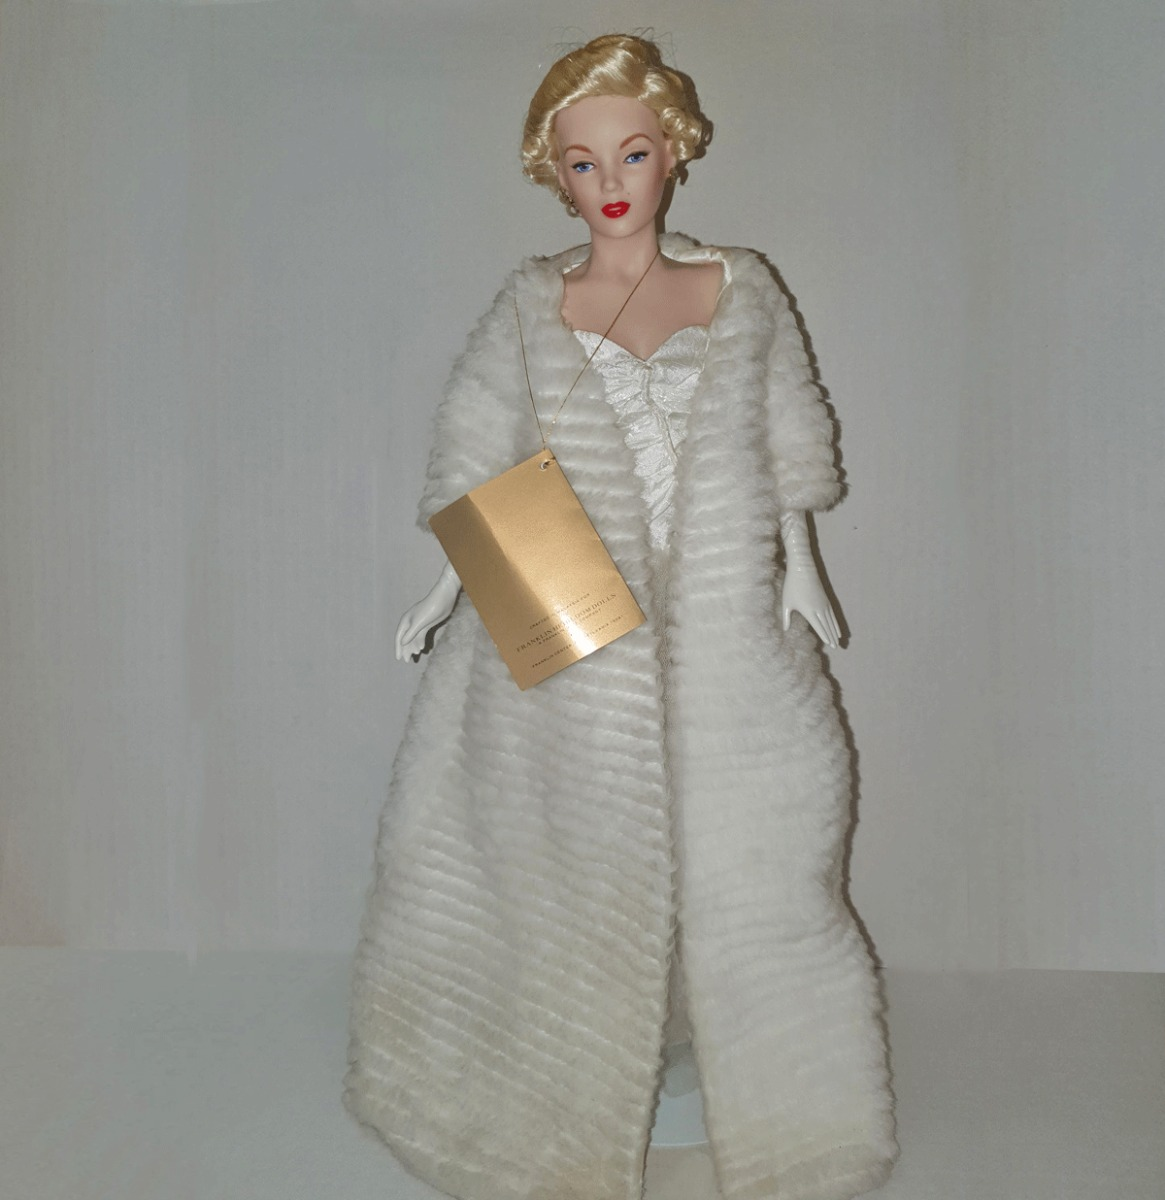 Franklin Mint Marilyn Monroe Porcelain Doll  All about Eve  with original box